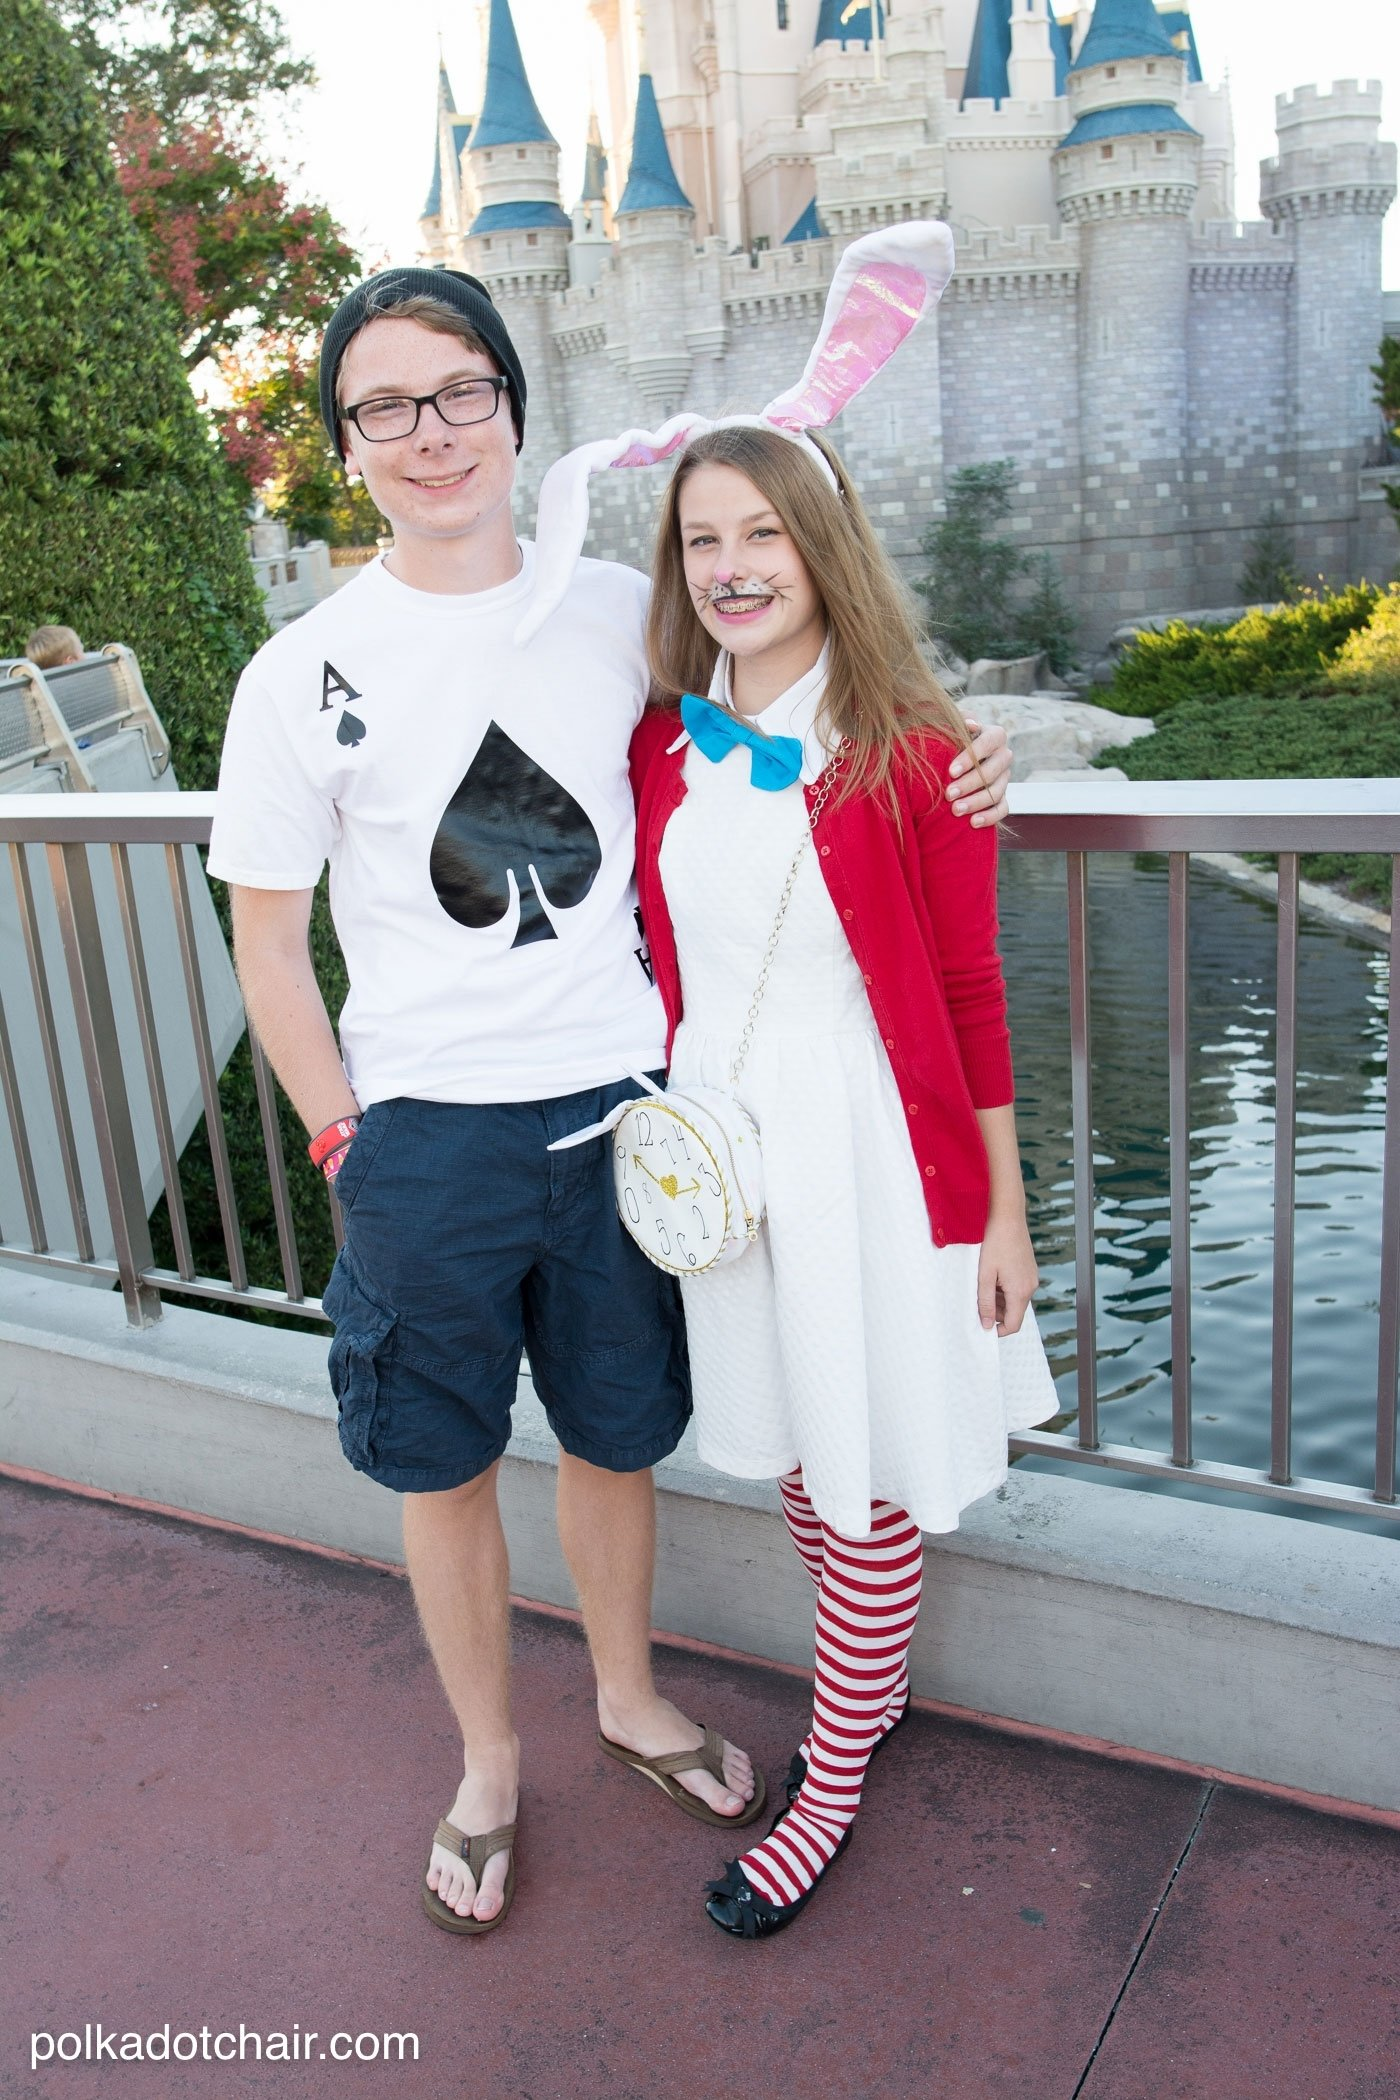 10 Gorgeous Alice And Wonderland Costume Ideas no sew alice in wonderland costume ideas the polka dot chair 2020